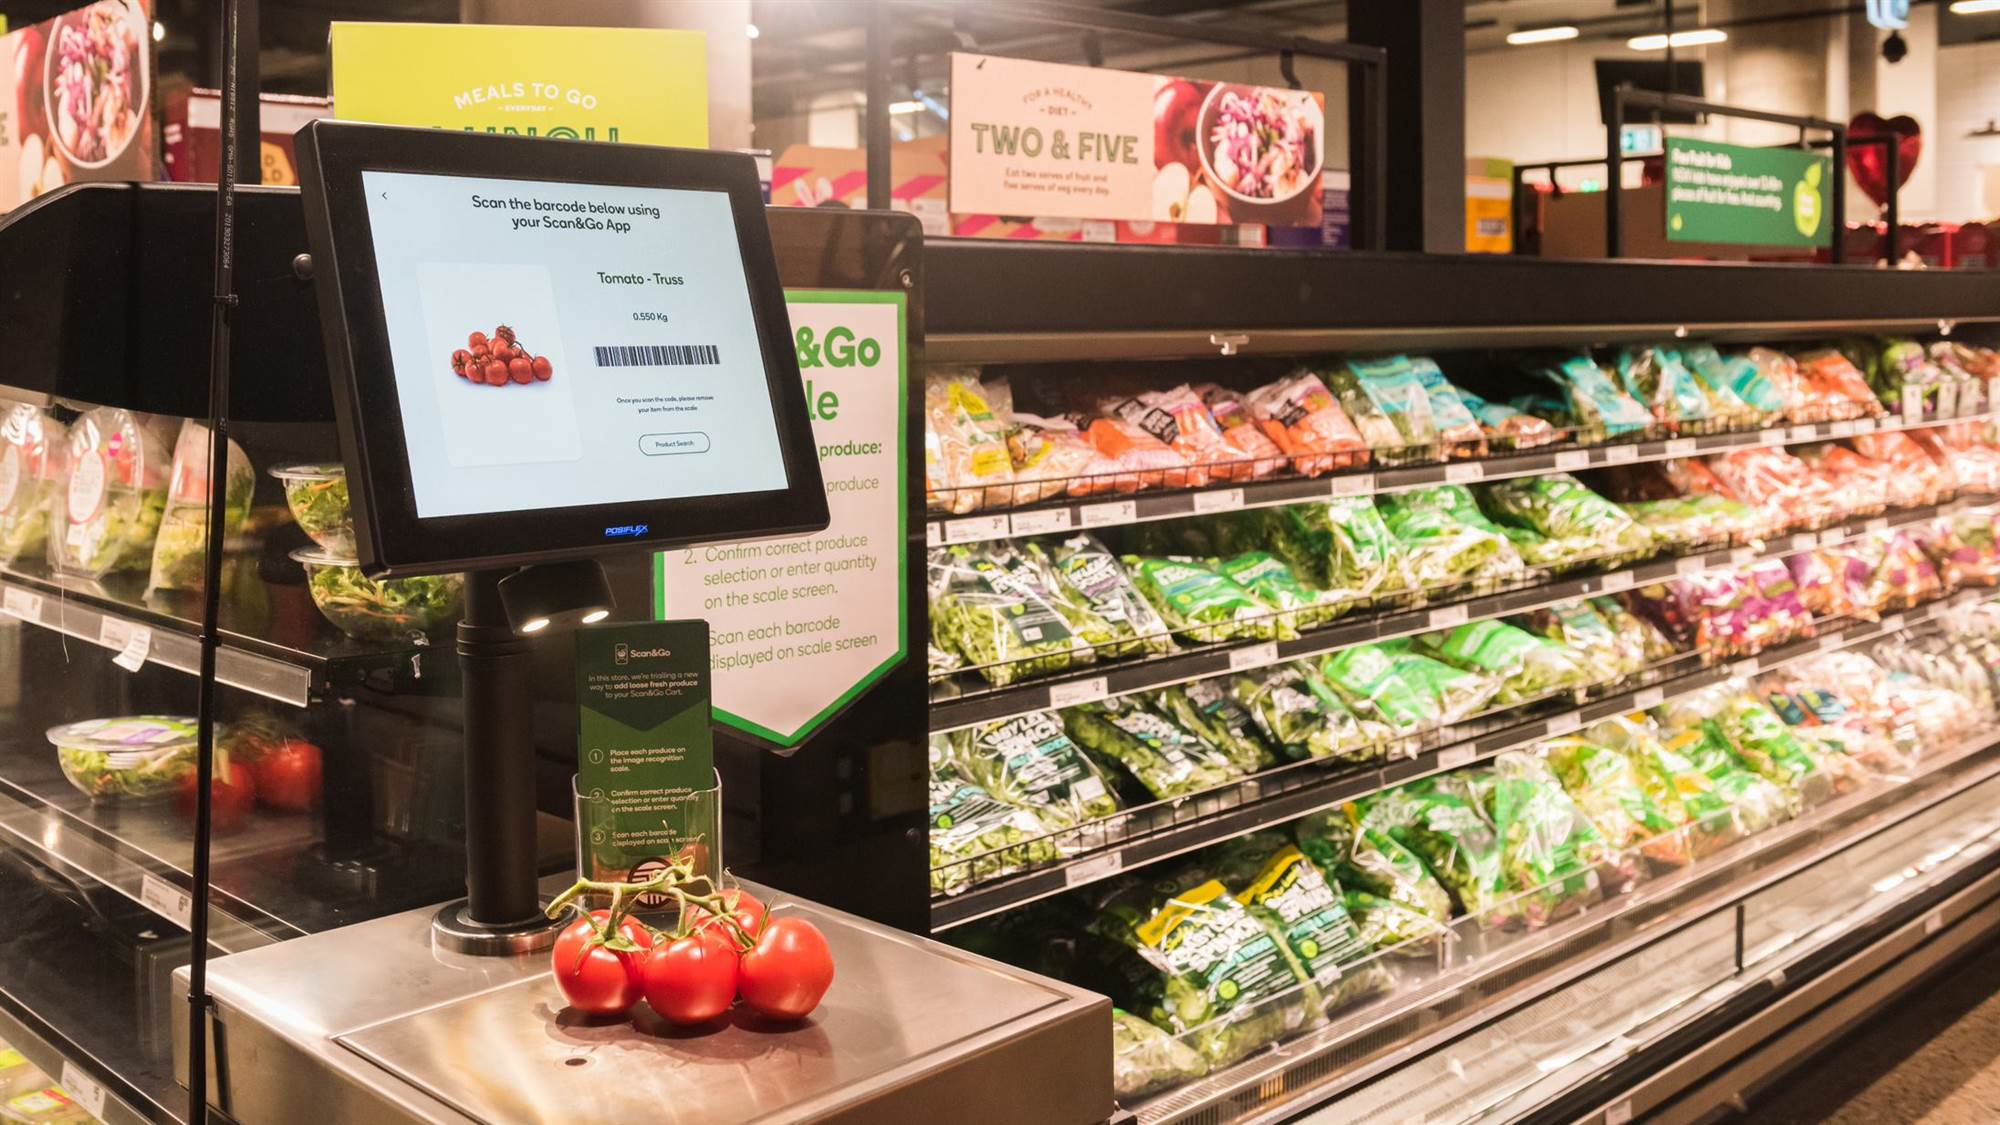 Woolworths uses AI to recognise fruit and veg purchases